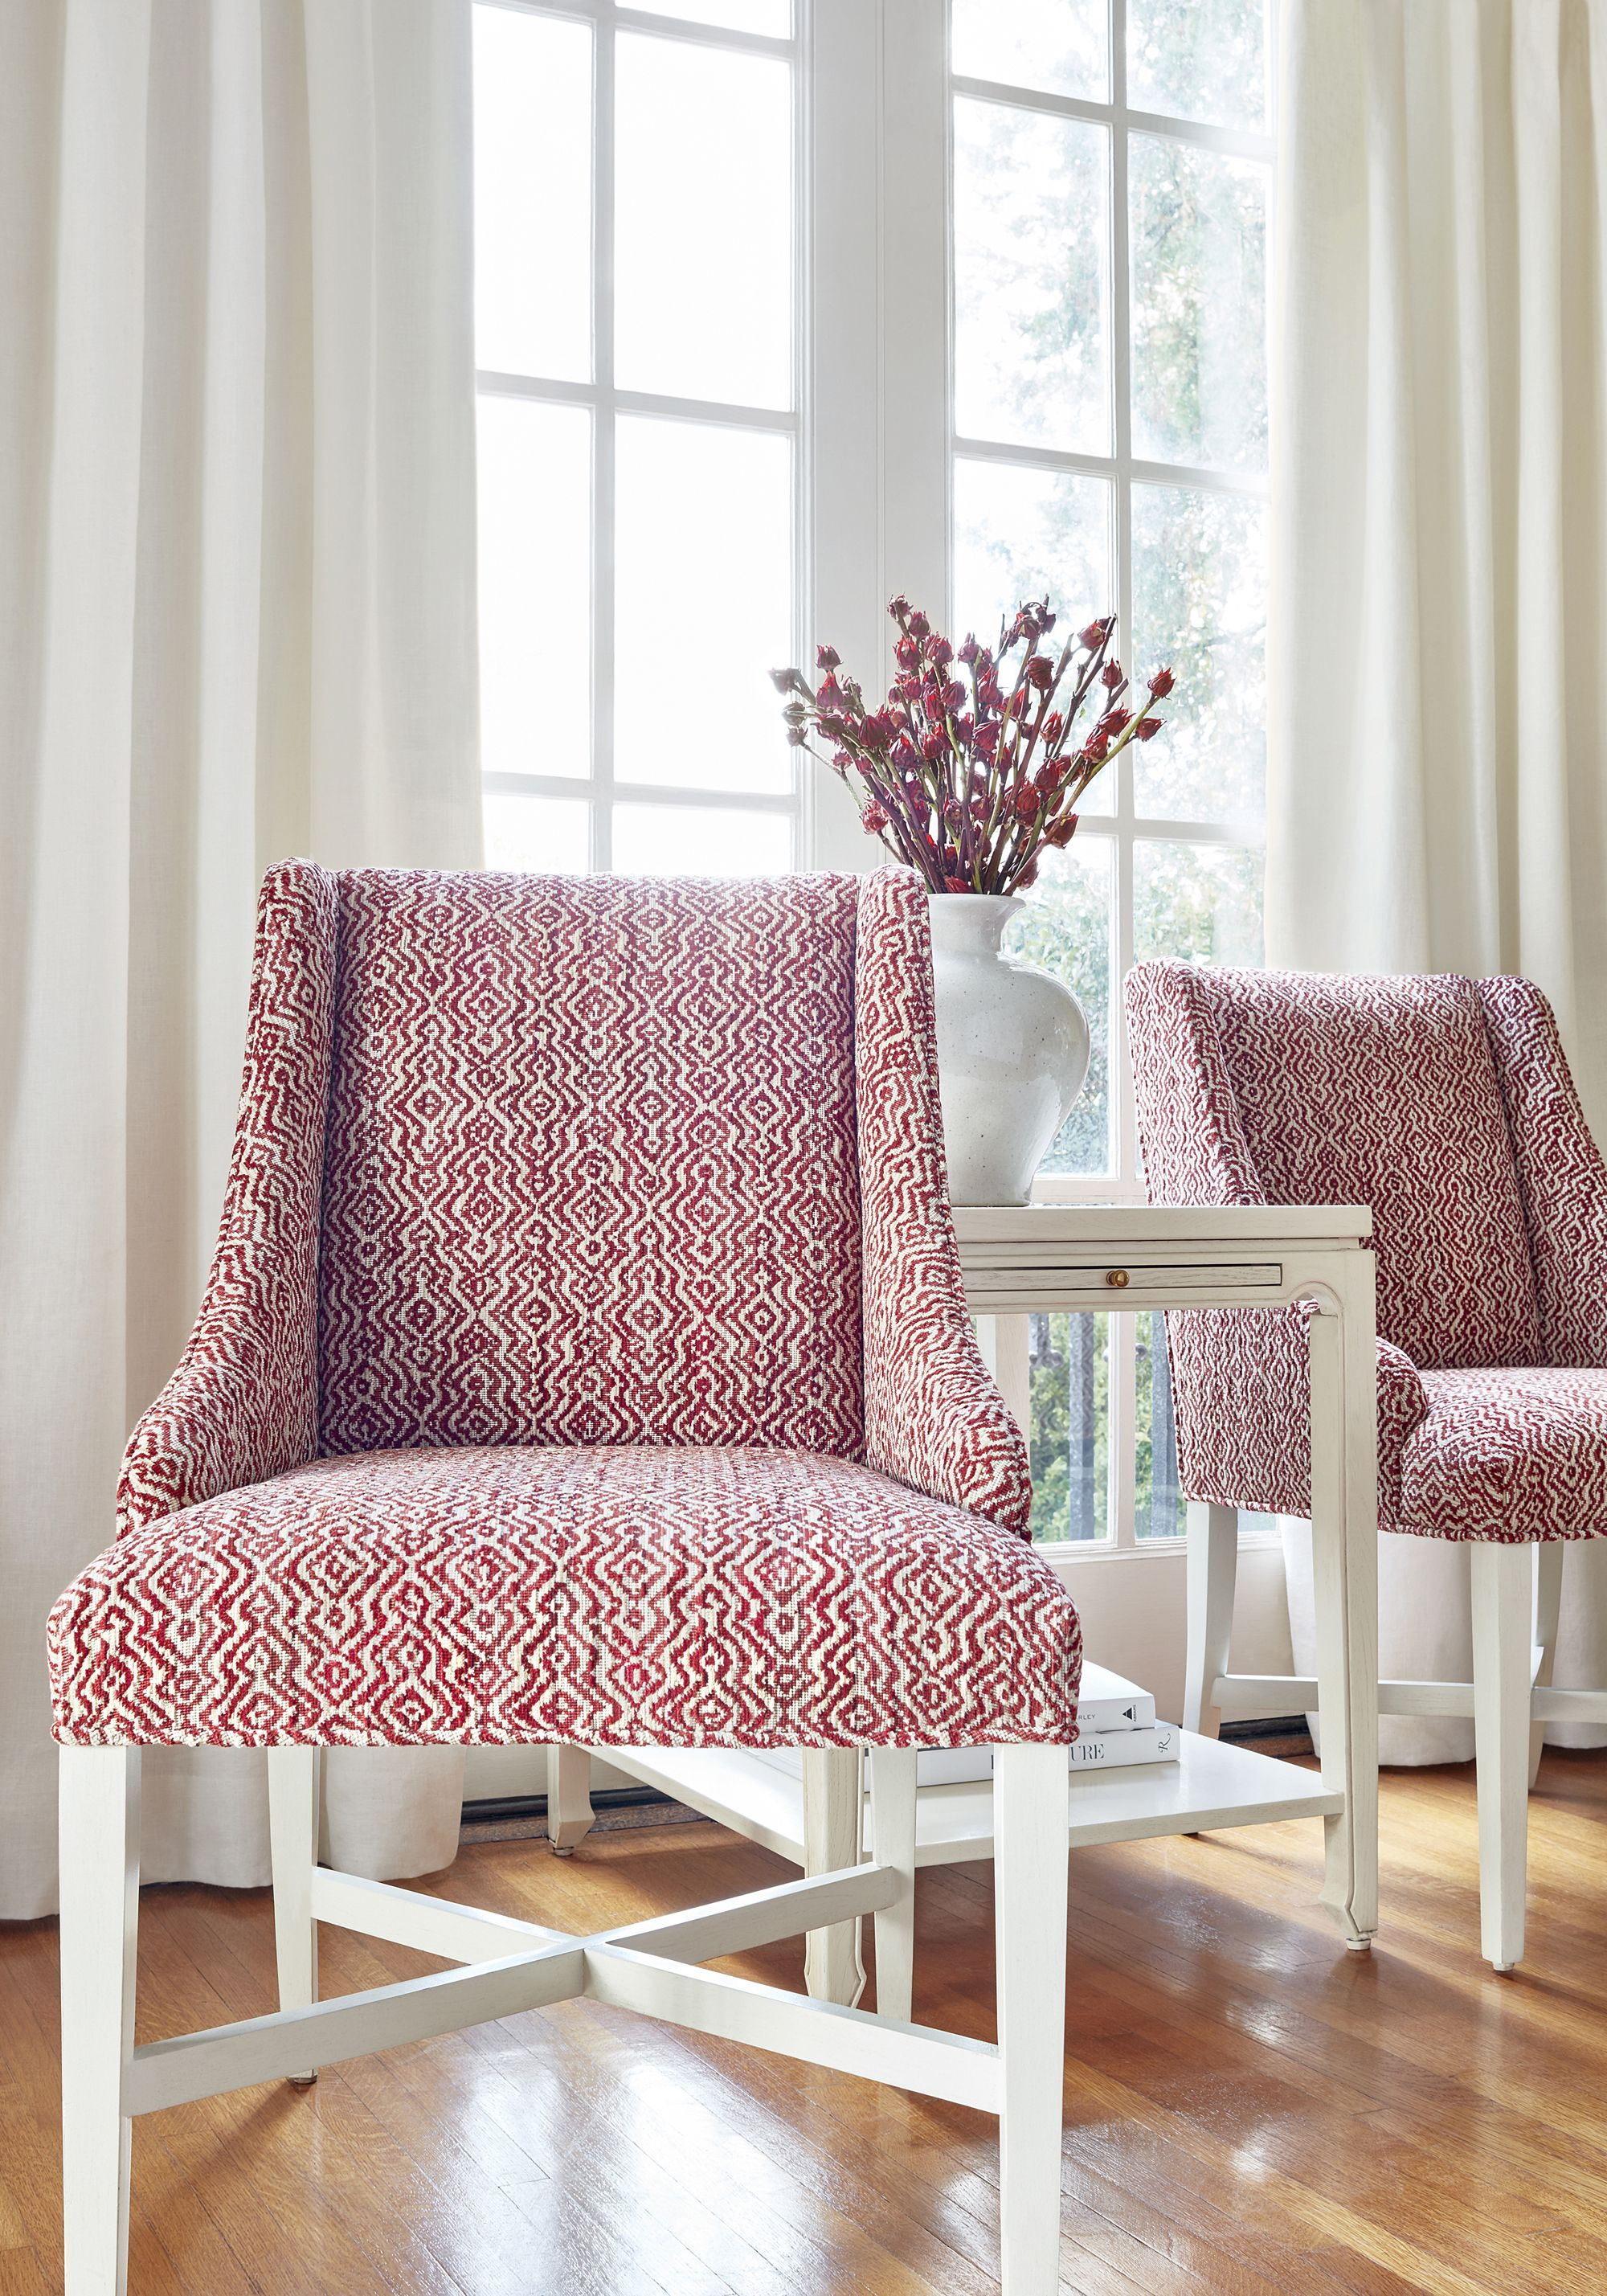 Hayden dining chair in anstasia woven fabric in cardinal from woven resource 11 rialto collection